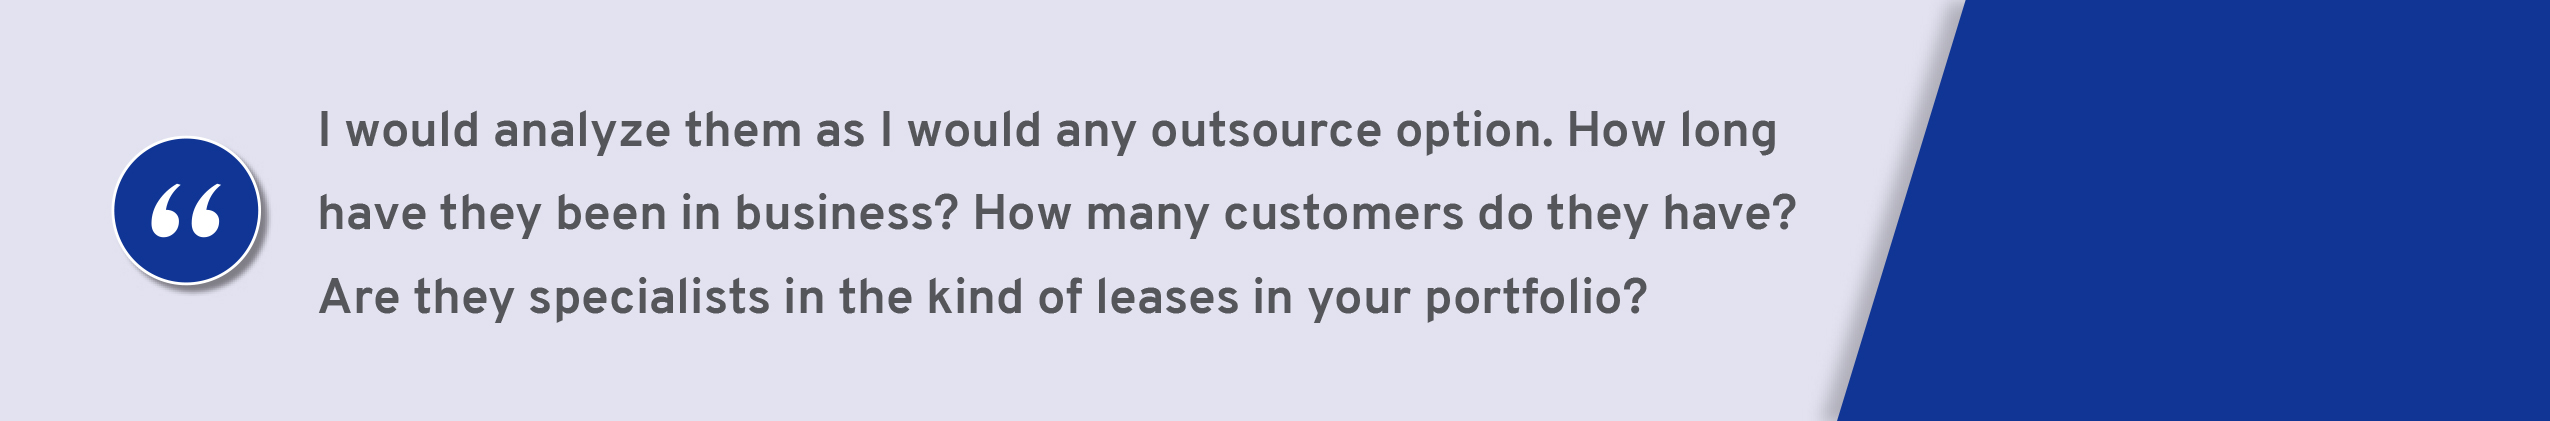 Choosing-the-Right-Software-for-Your-Lease-Population.jpg